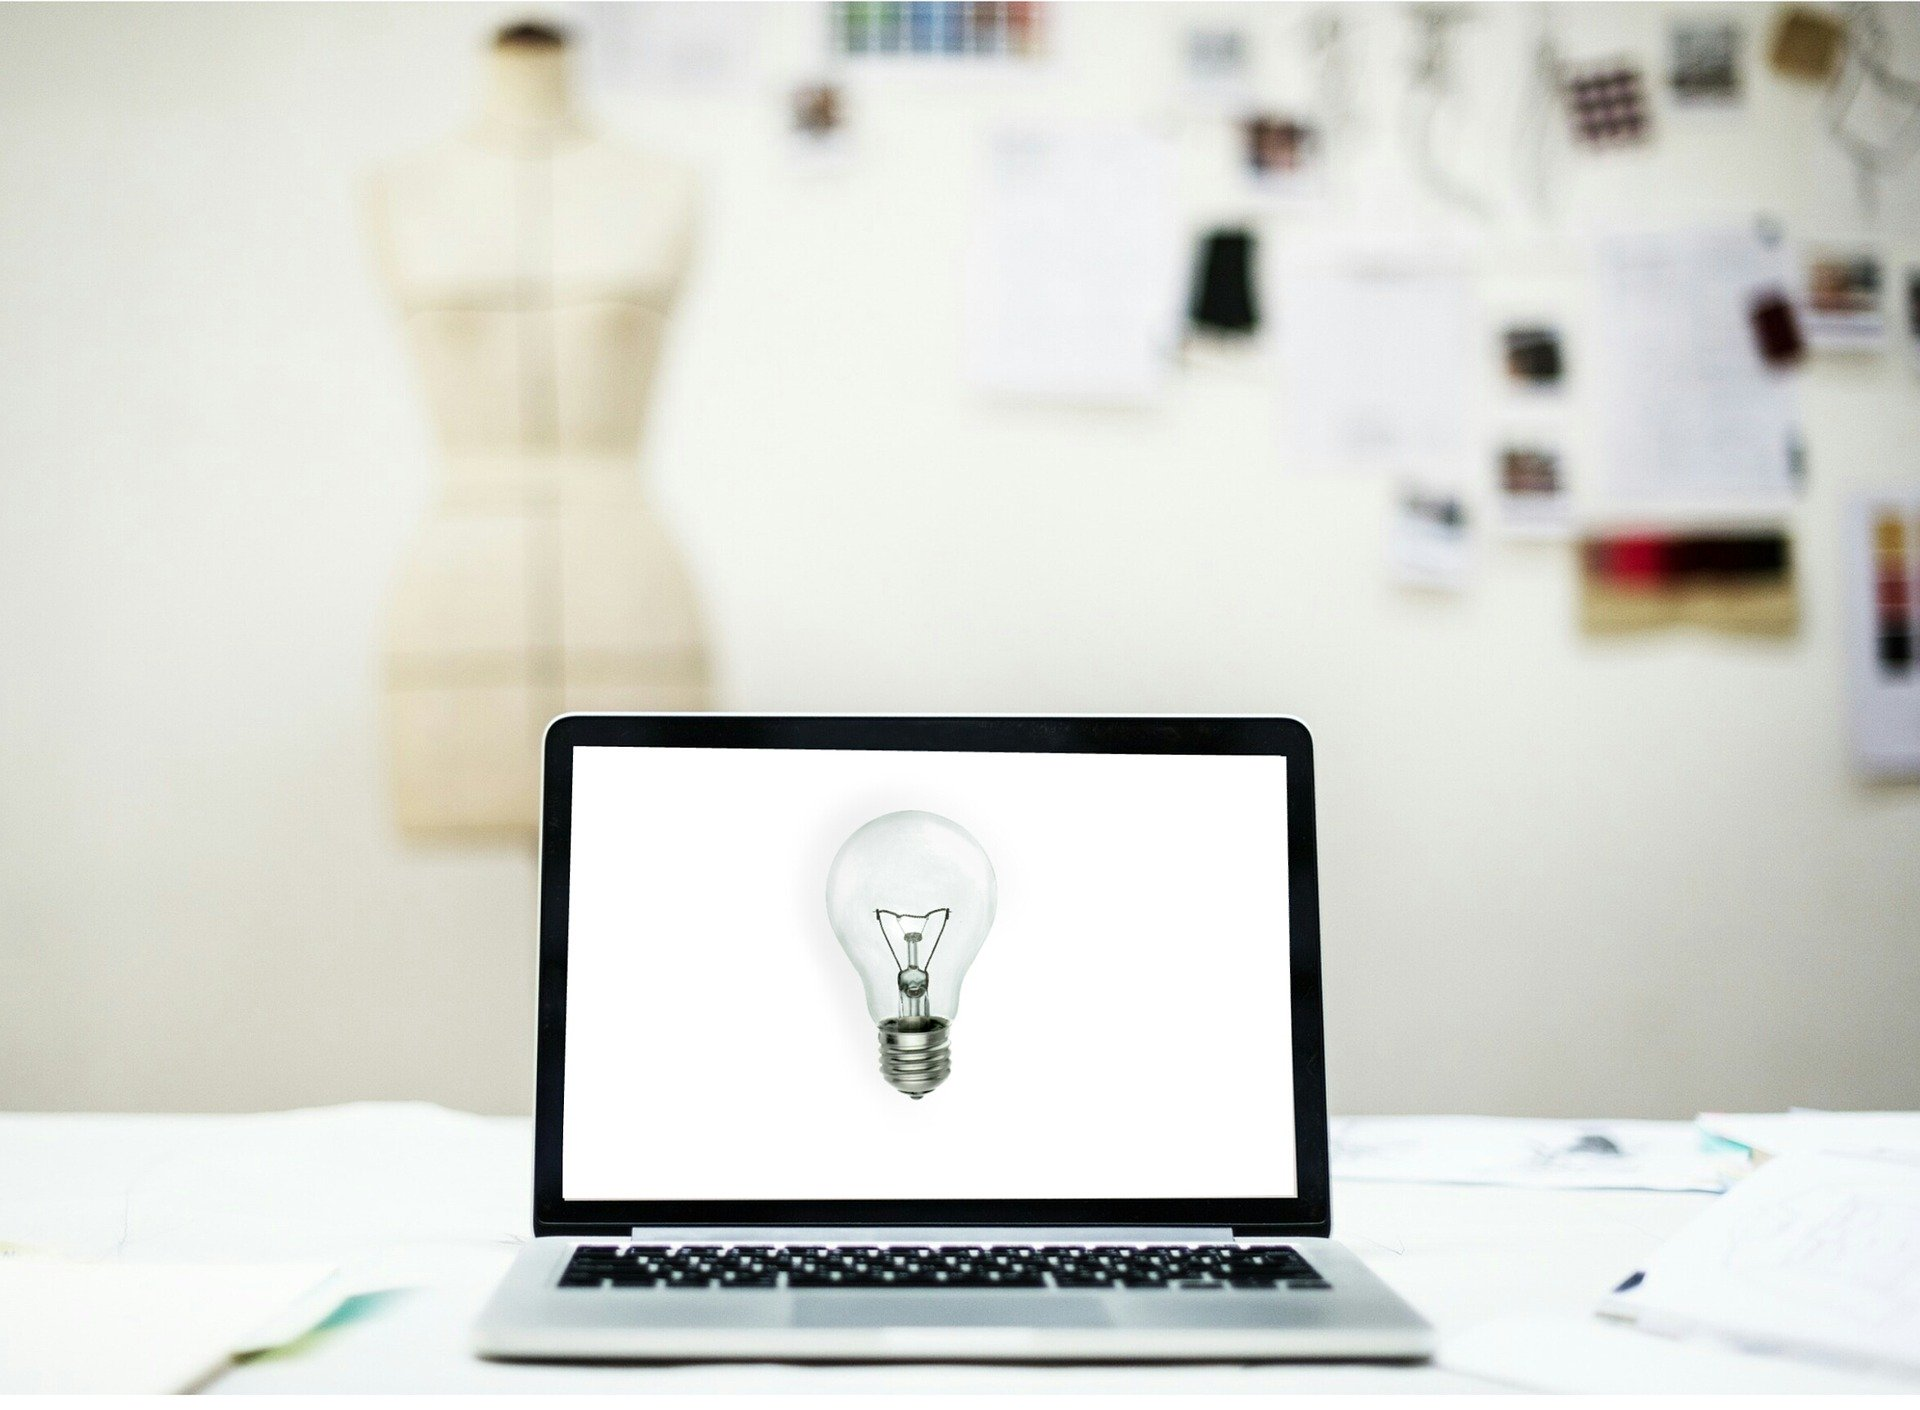 Online Business Model Canvas for Local SME